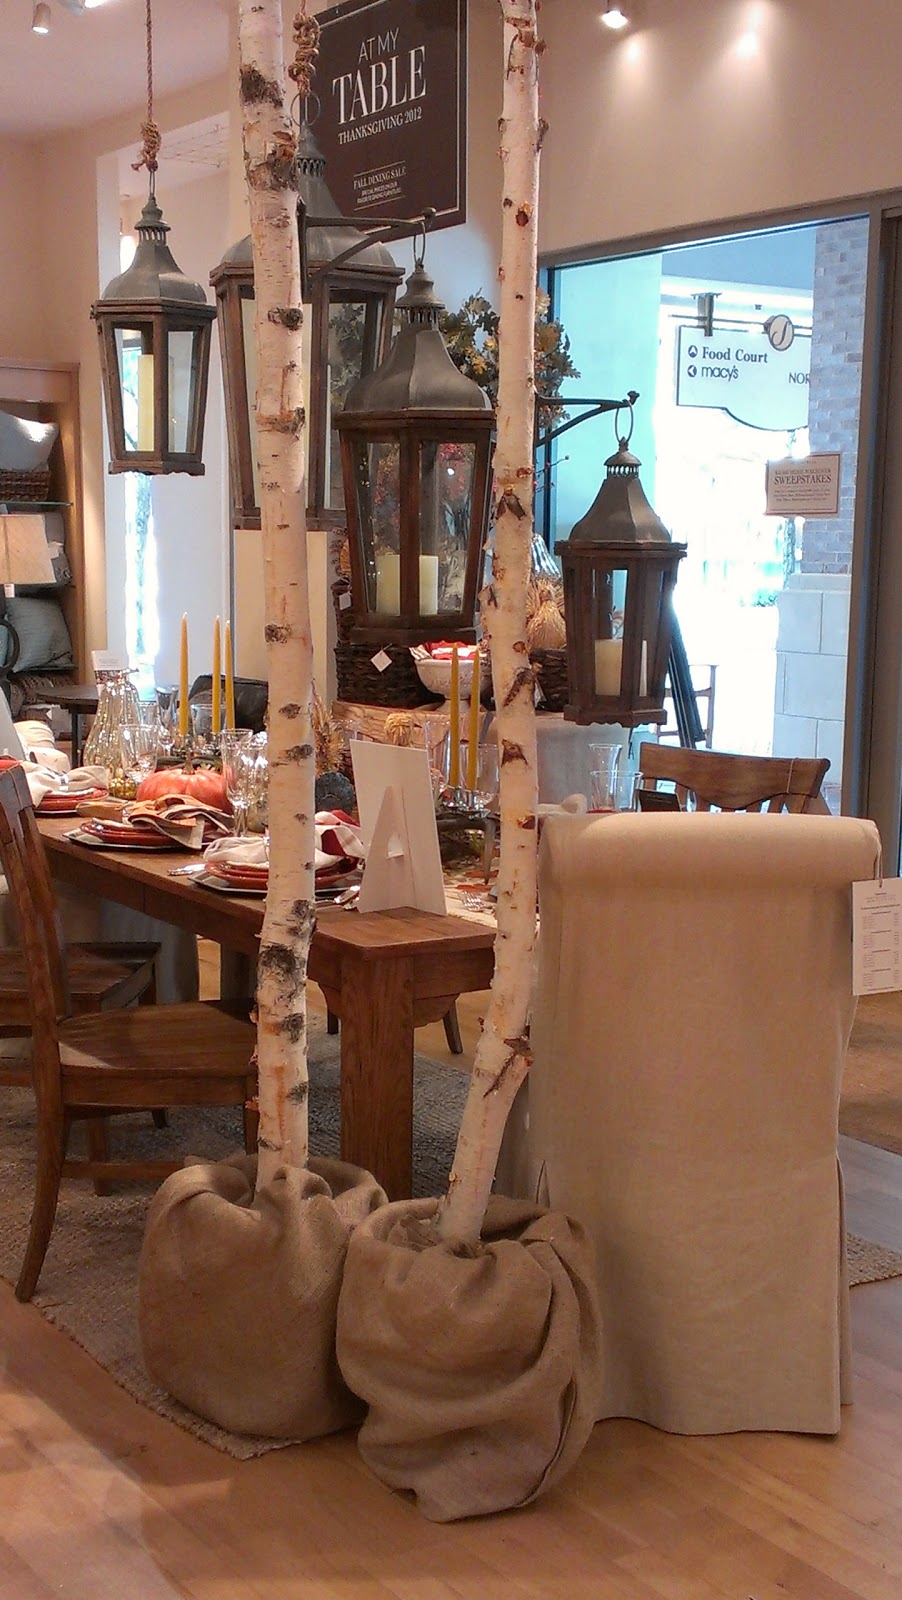 Southern With Sass Potterybarn Inspires With Fall Display